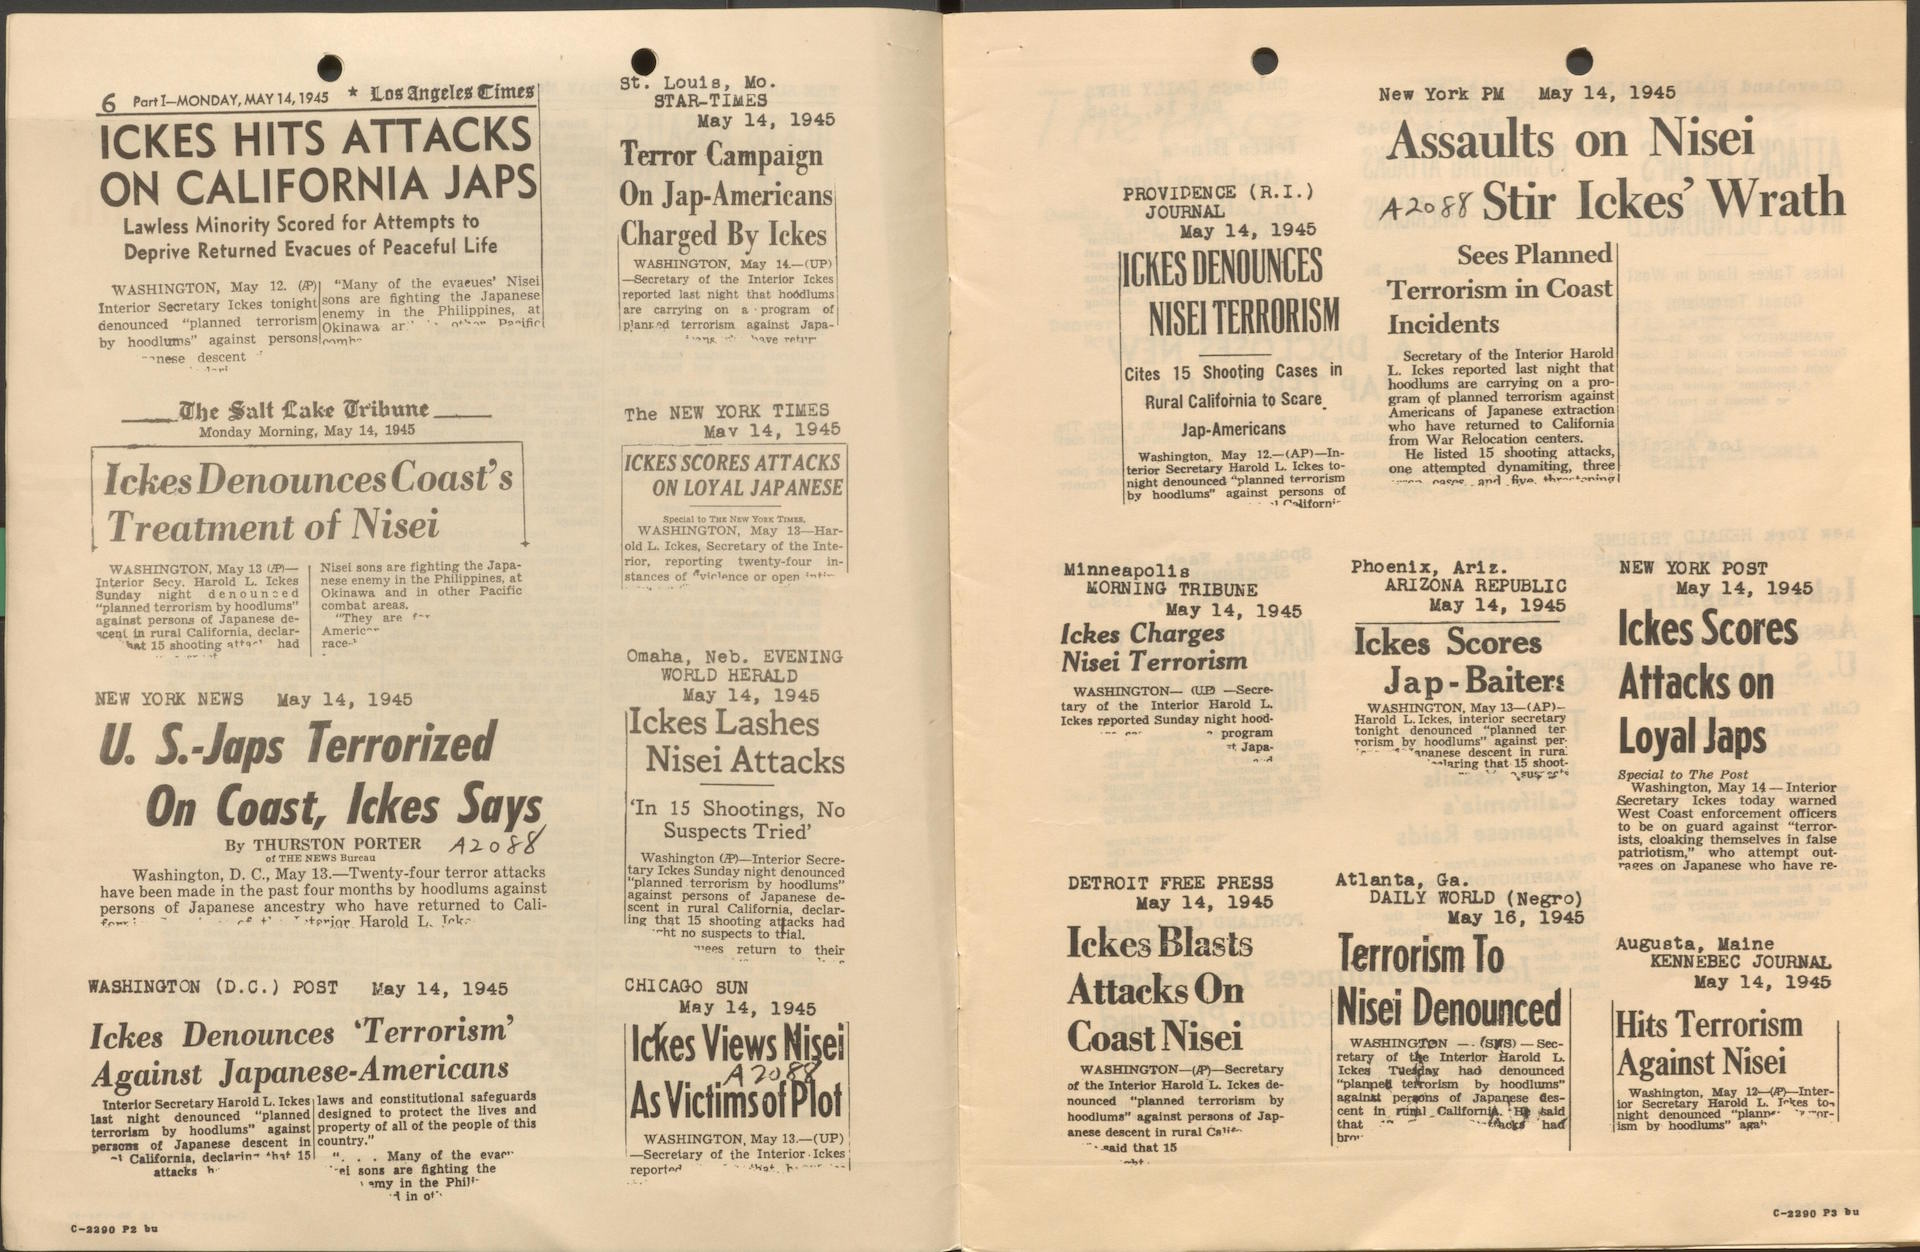 Headlines of Harold Ickes denouncing violence against returning Japanese Americans